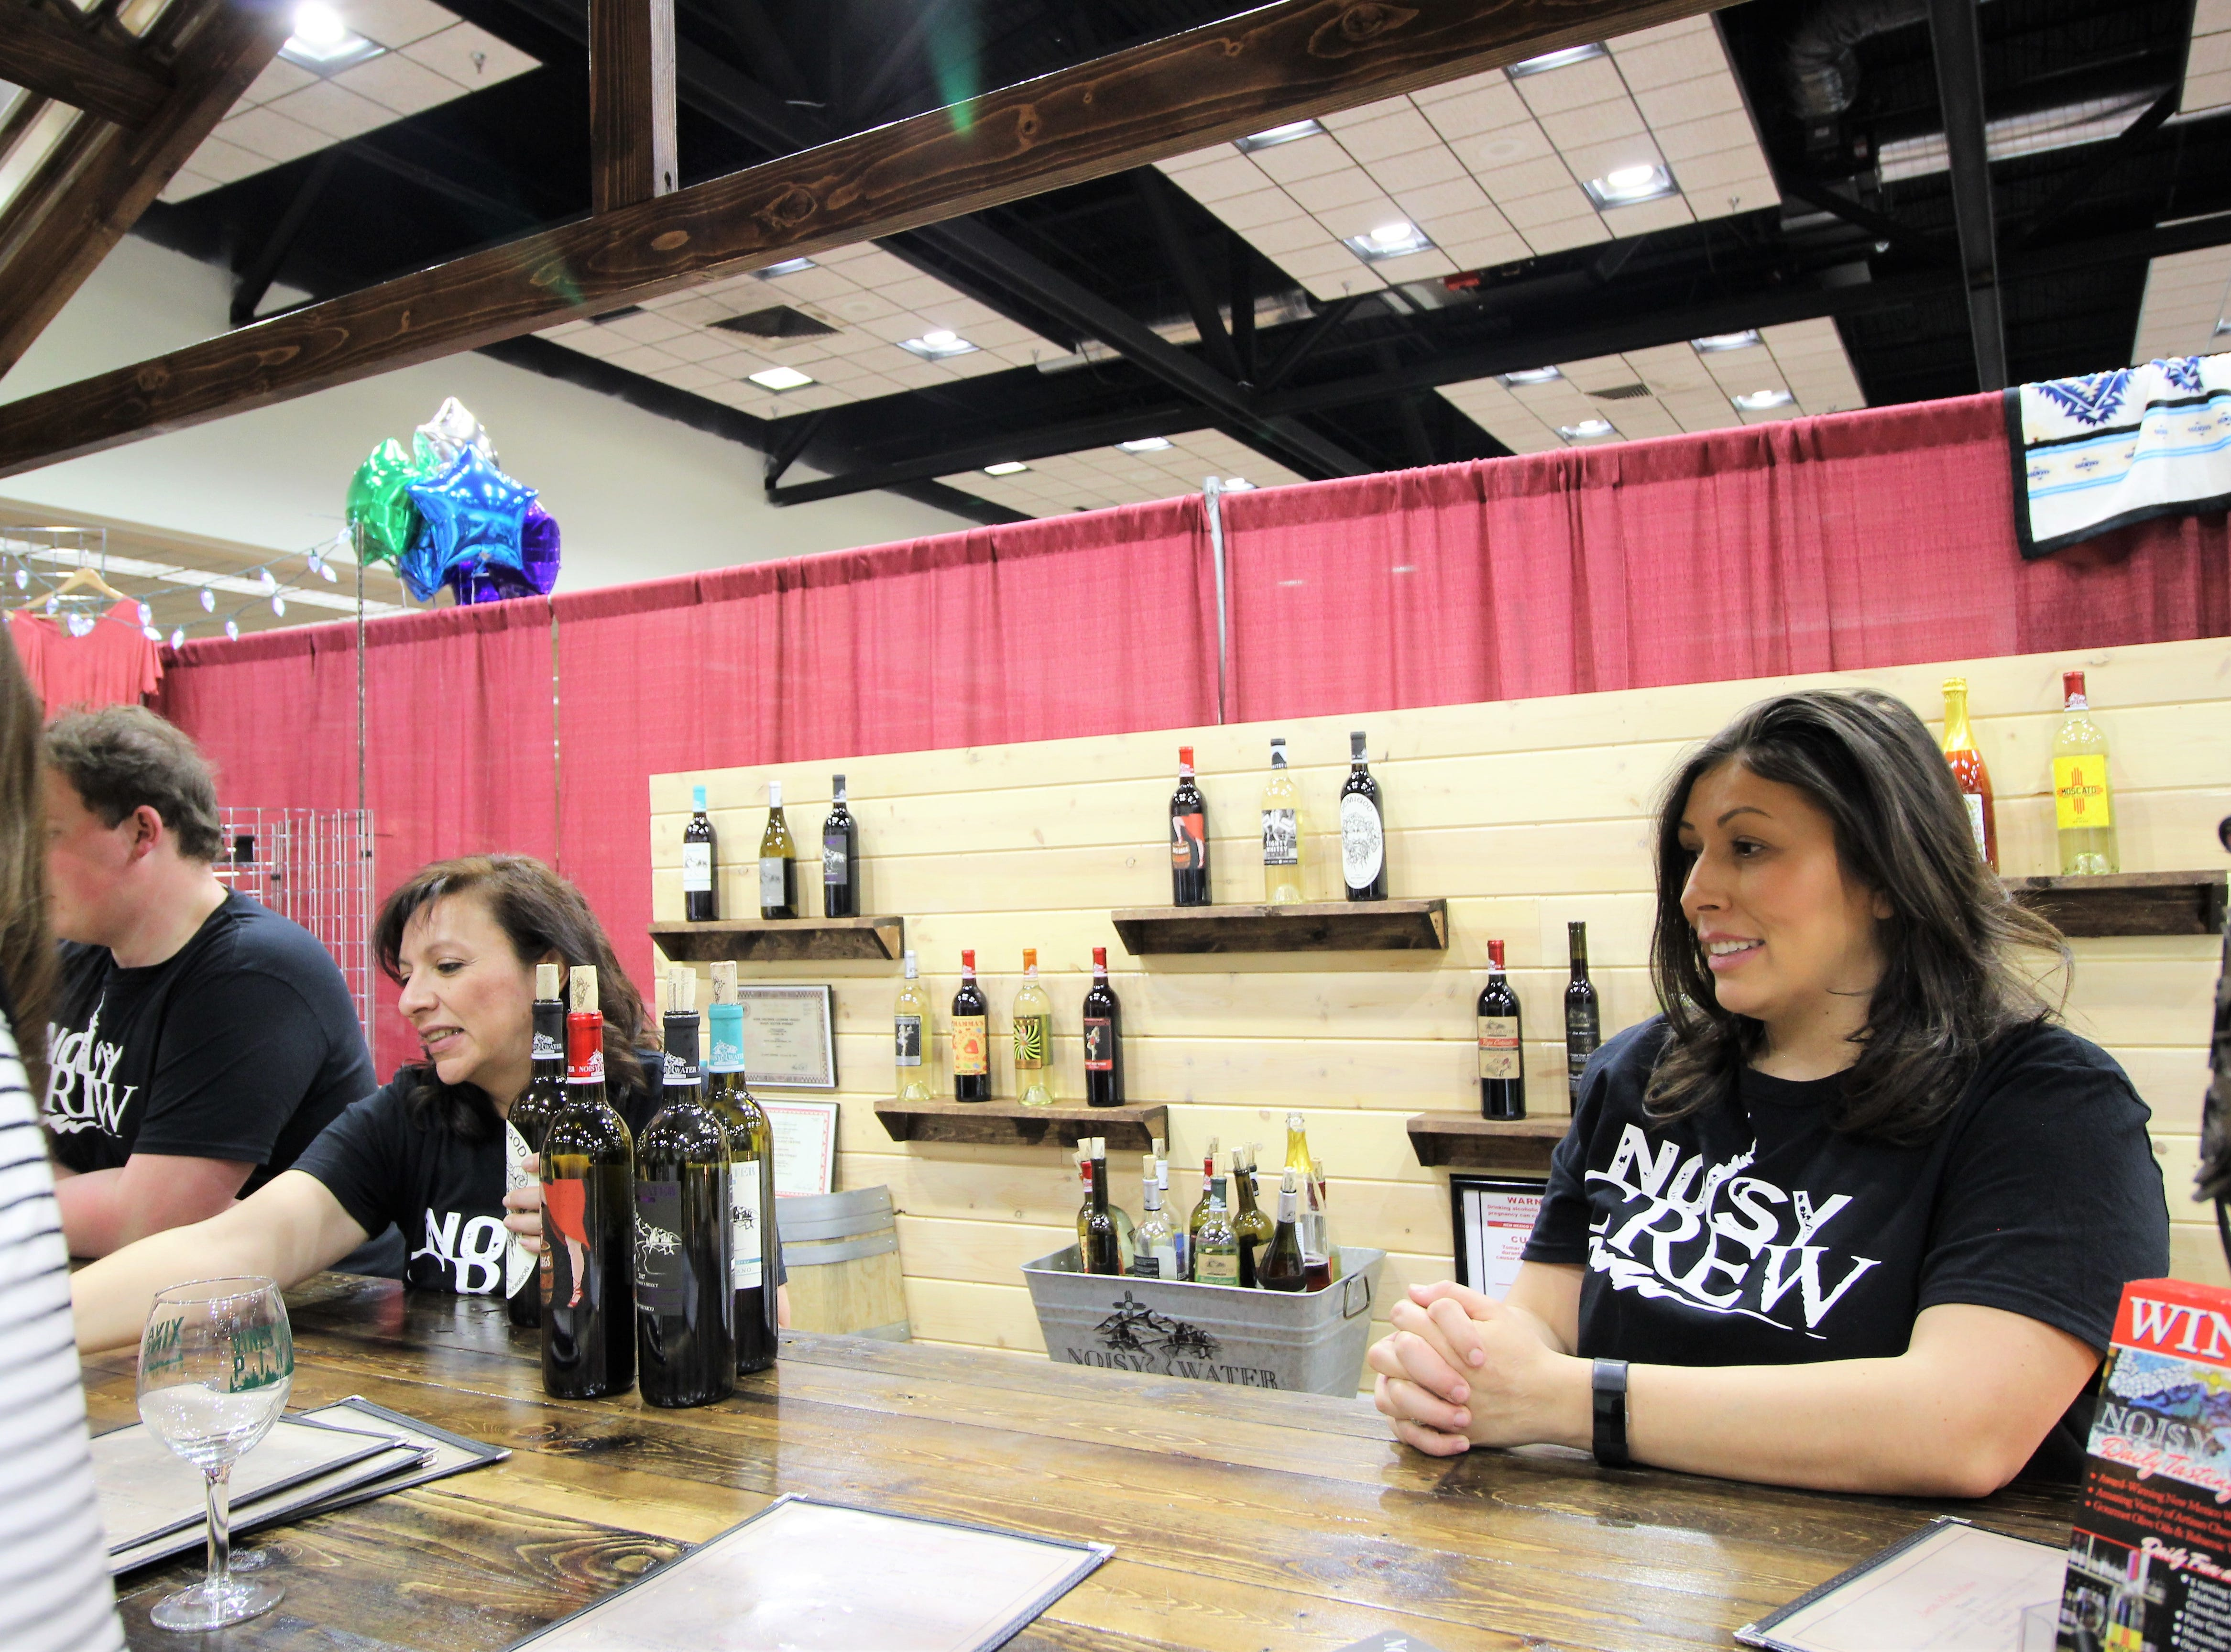 Noisy Water Winery provided new flavors this year with the big hits being on Mango and Berry flavors.